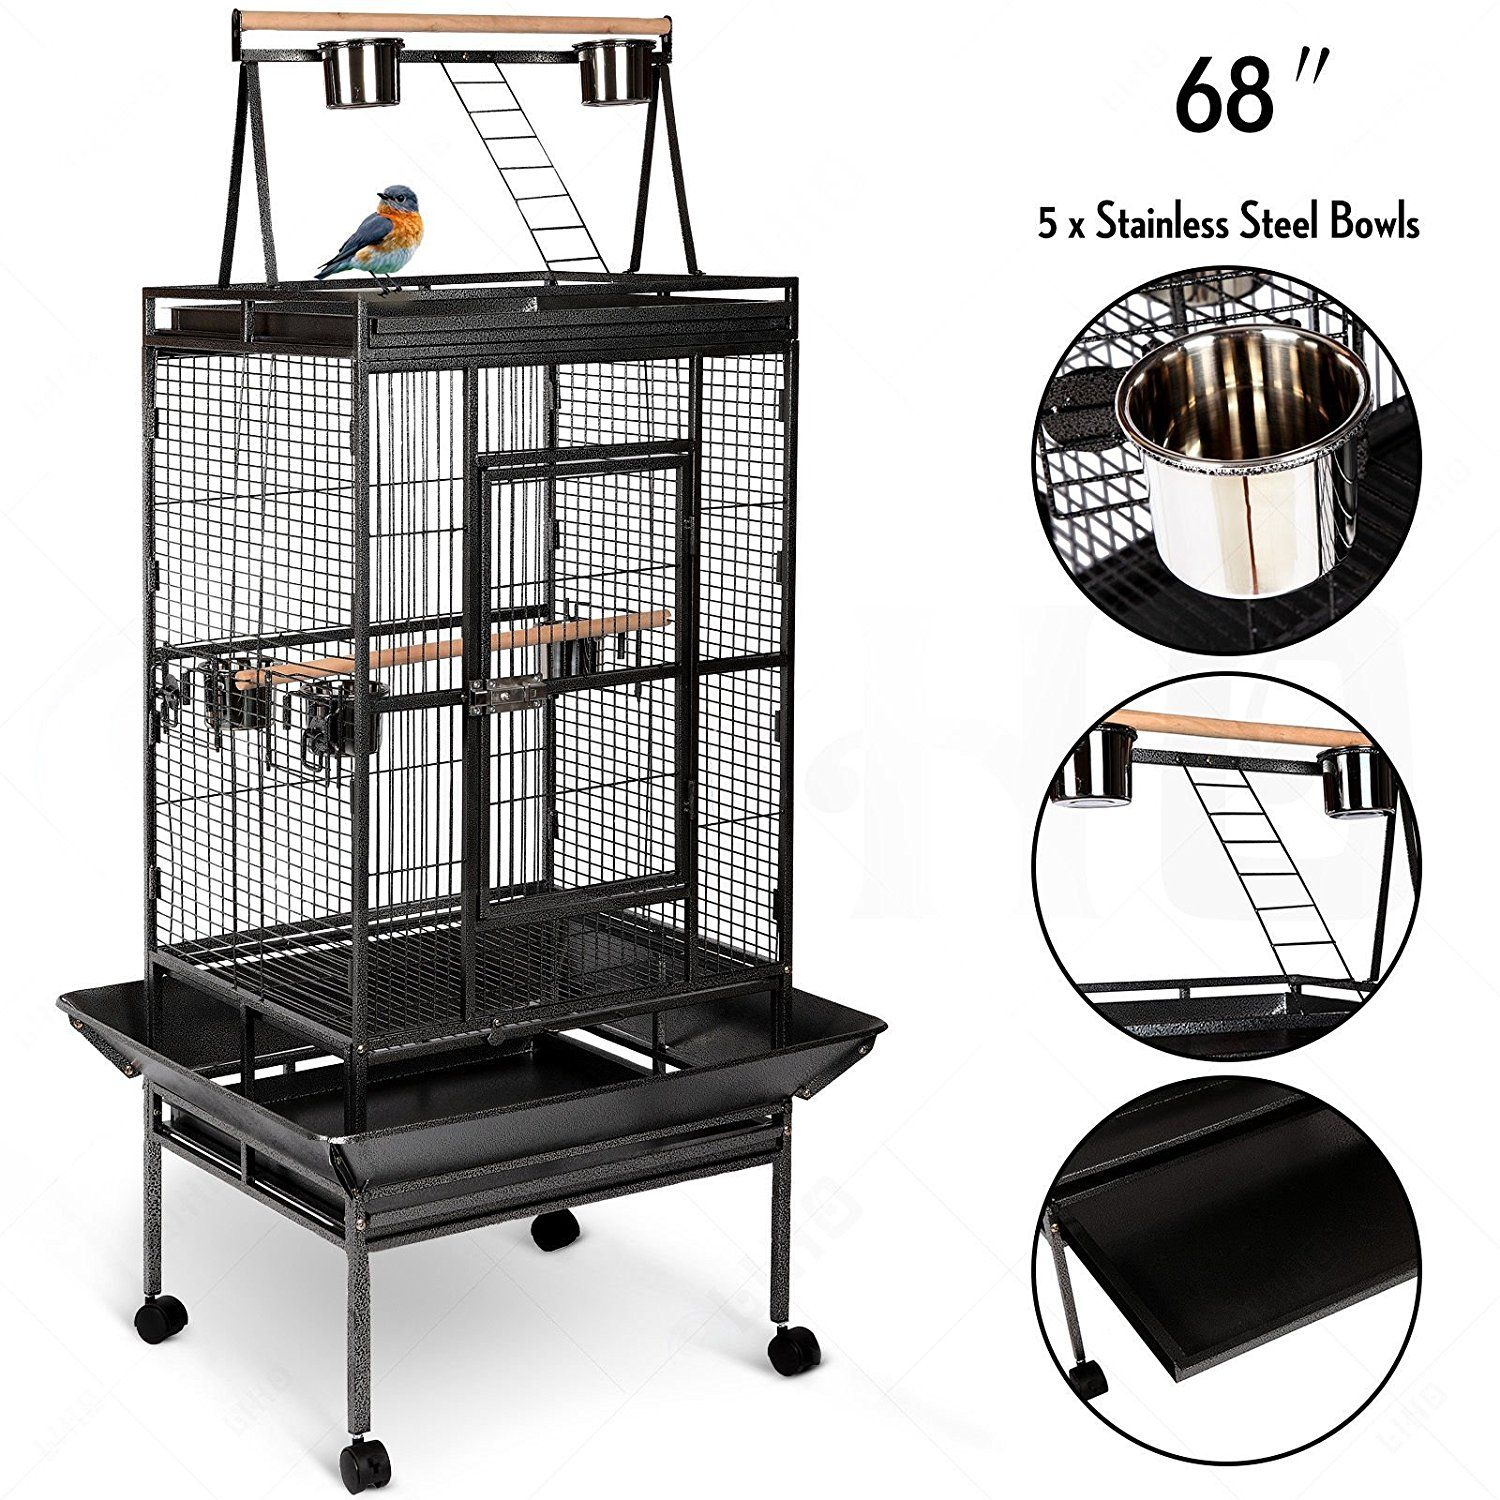 Large Play Top Bird Cage Parrot Cages With Play Top Pet Supplies Birdcages Parrot Finch Macaw Cockatoo Play Stand W Roller Ca Parrot Cage Finch Cage Pet Cage